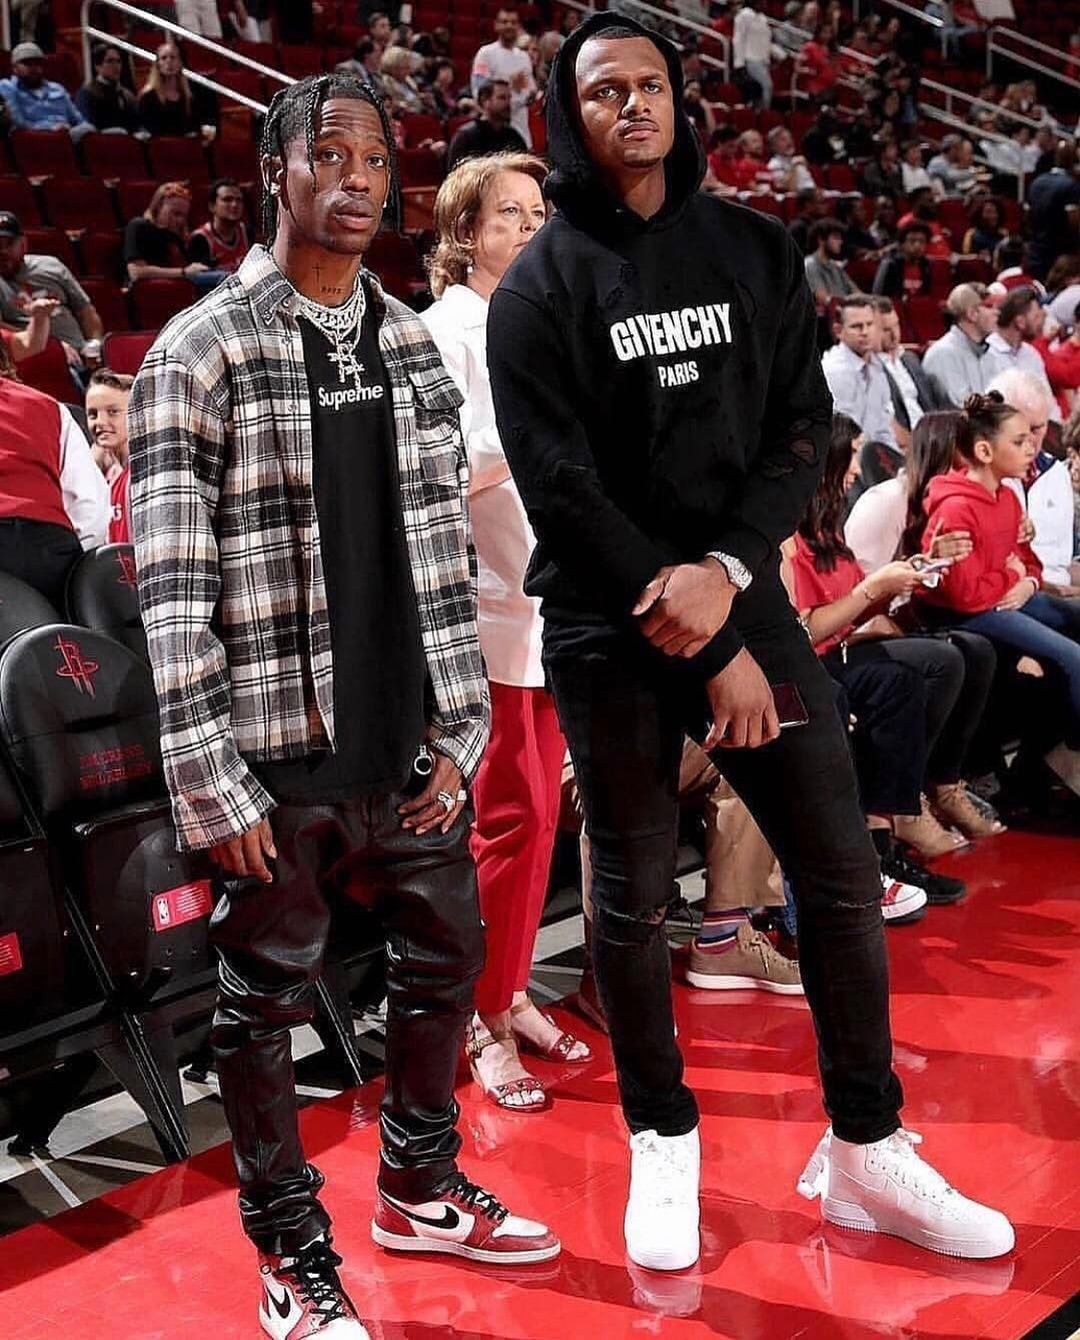 Pin by culchar on Travis in 2020 Travis scott outfits